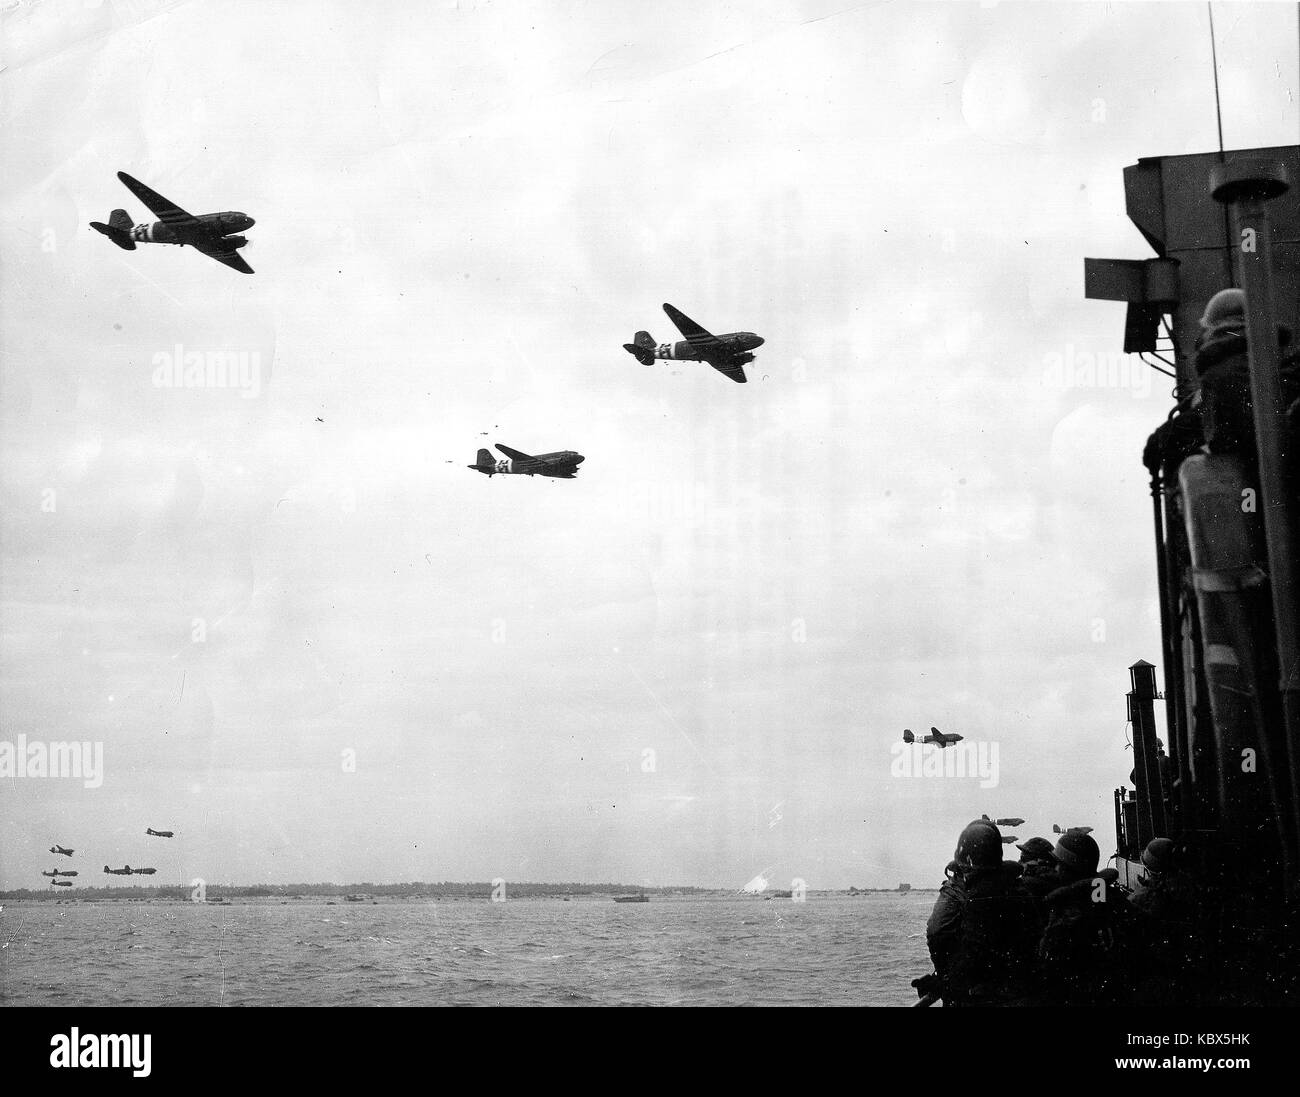 account of d day during world war ii So what does the d in d-day stand for the battle of normandy, also known as d-day, started on june 6, 1944 and was the beginning of the major invasion of german-occupied western europe during world war ii.